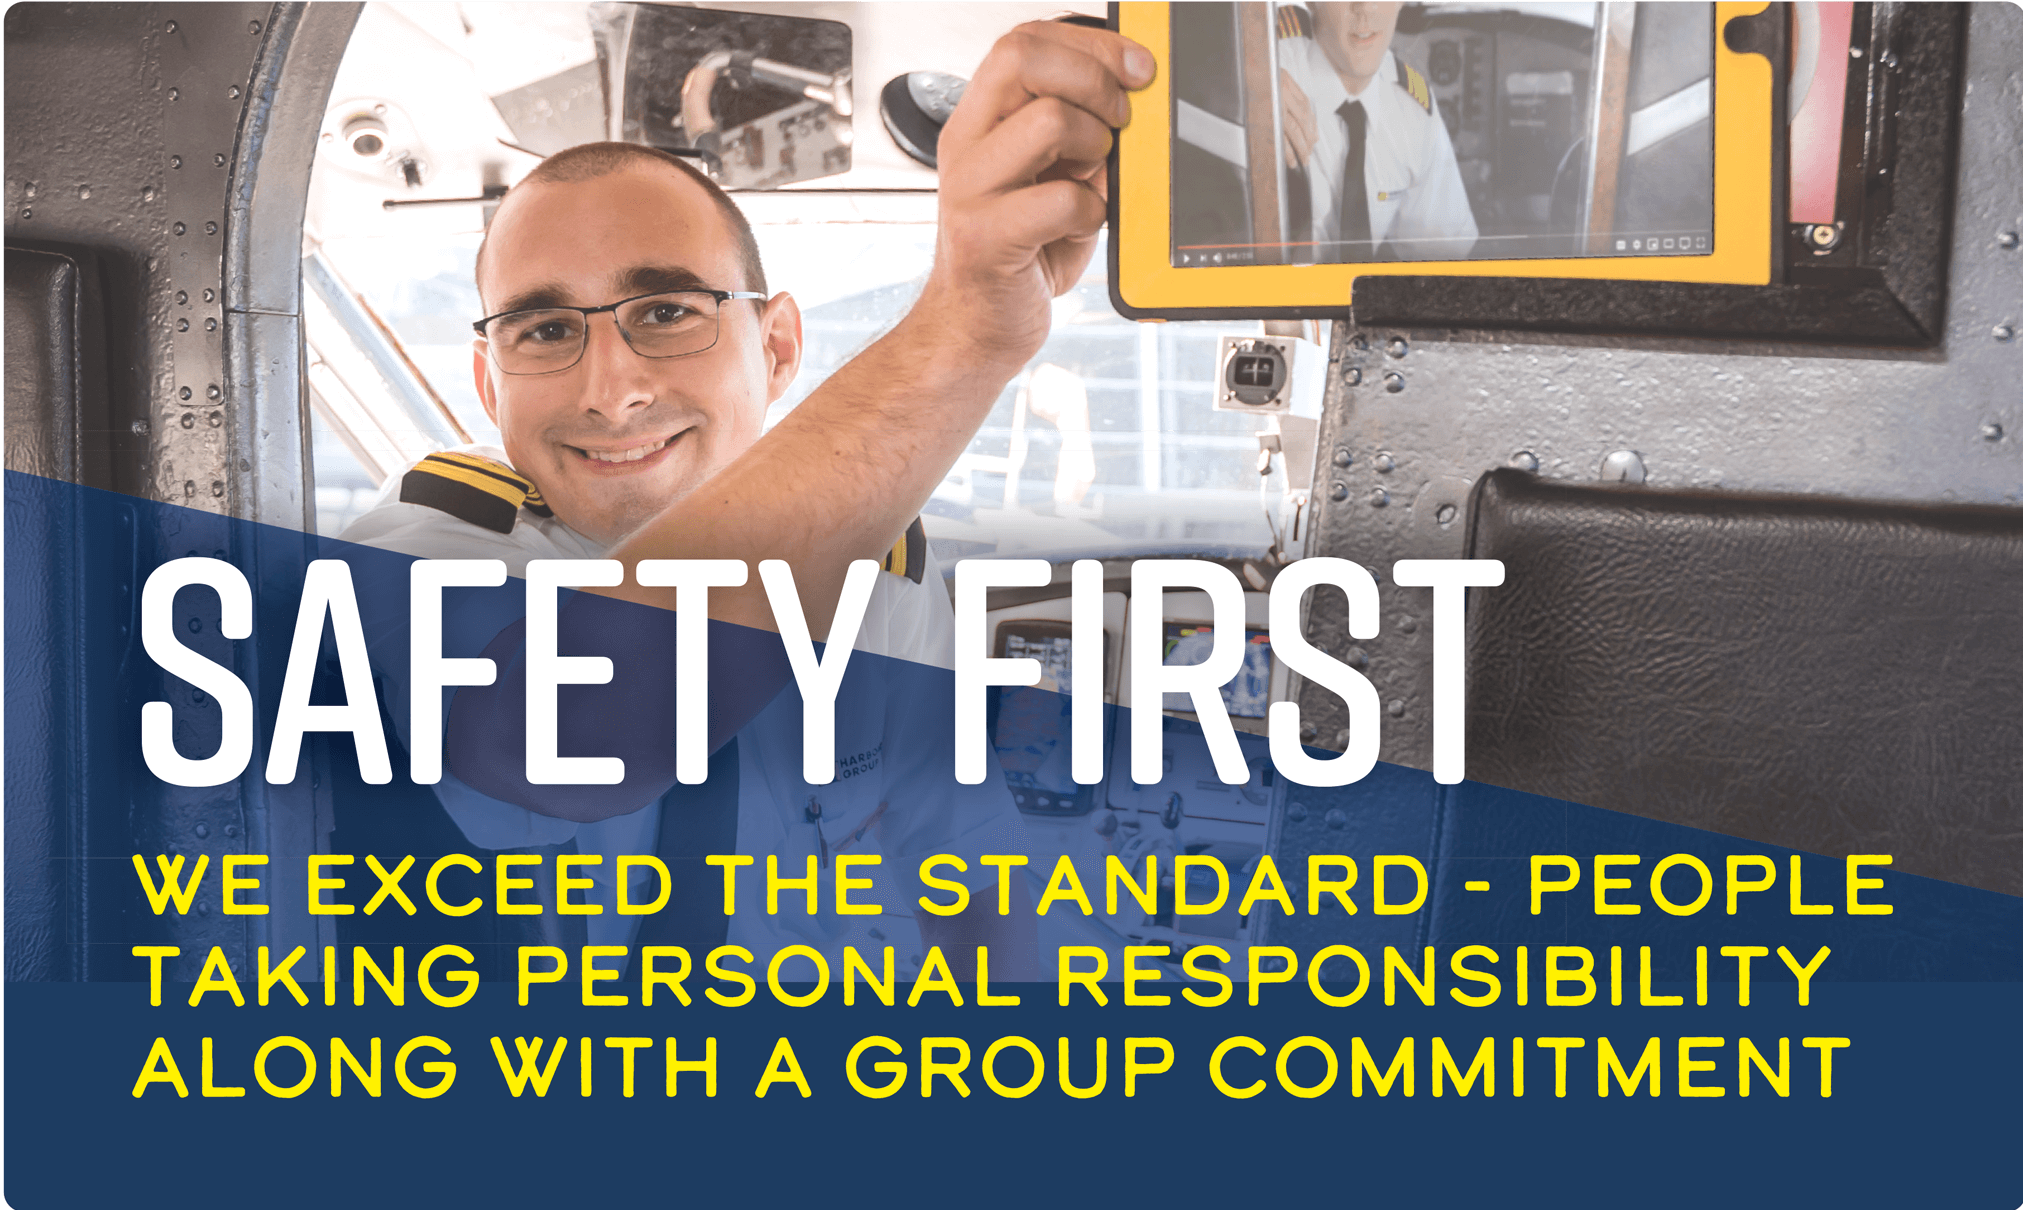 Safety First: We exceed the standard - people taking personal responsibility along with a group commitment